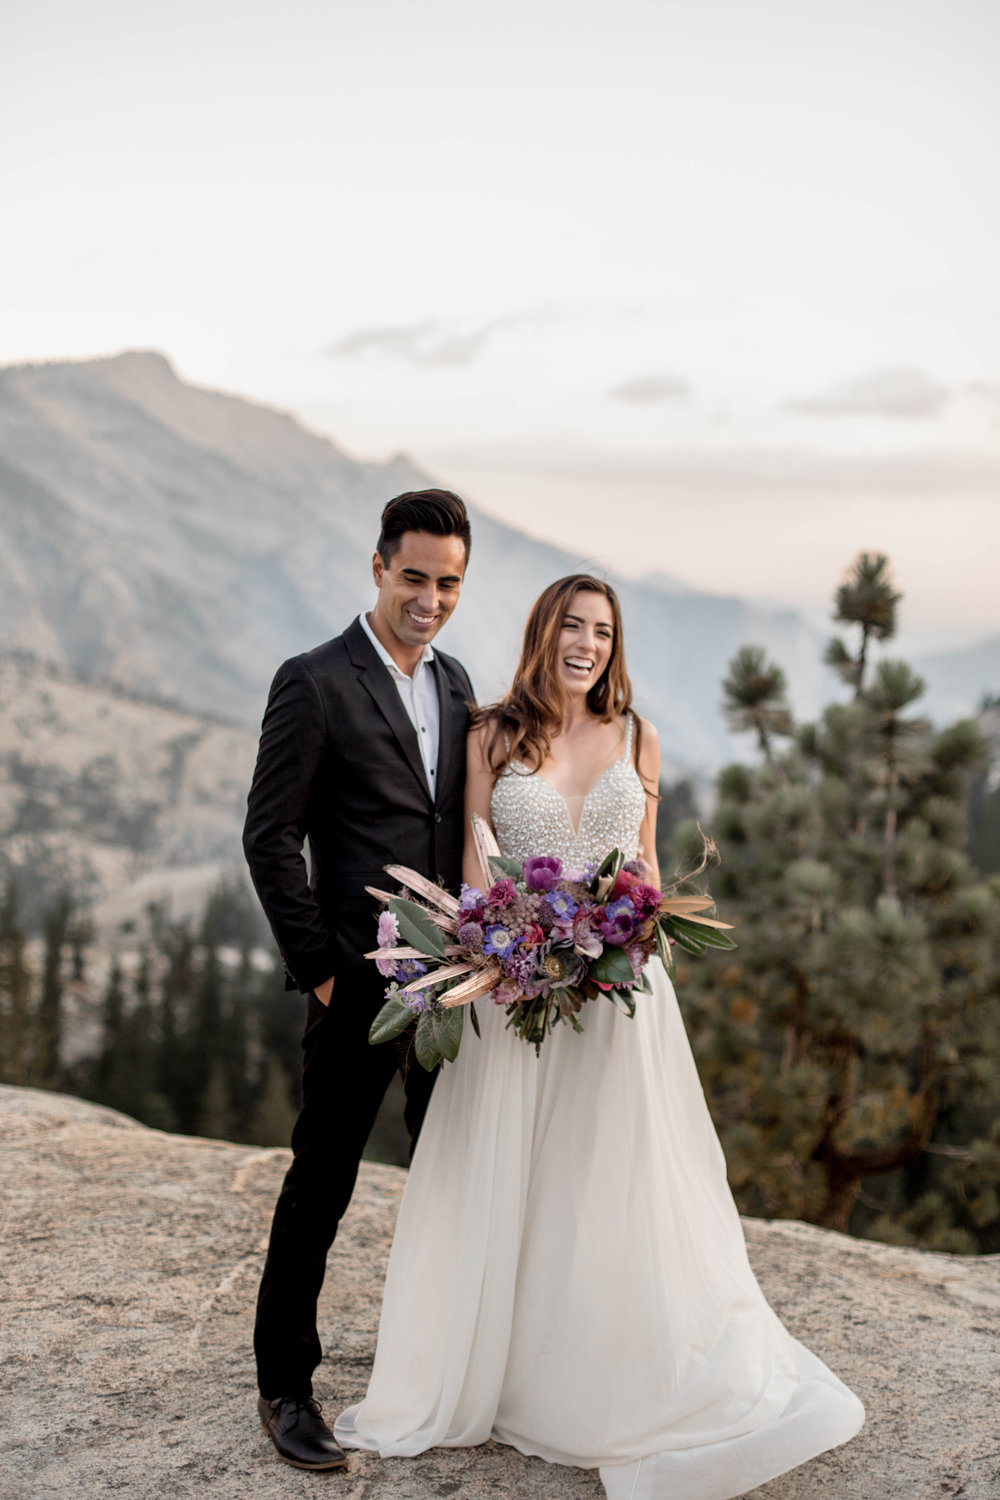 nicole-daacke-photography-yosemite-national-park-wedding-sunset-elopement-olmstead-point-yosemite-adventure-wedding-photographer-adventurous-elopement-destination-wedding-national-park-wedding-photography-1320.jpg